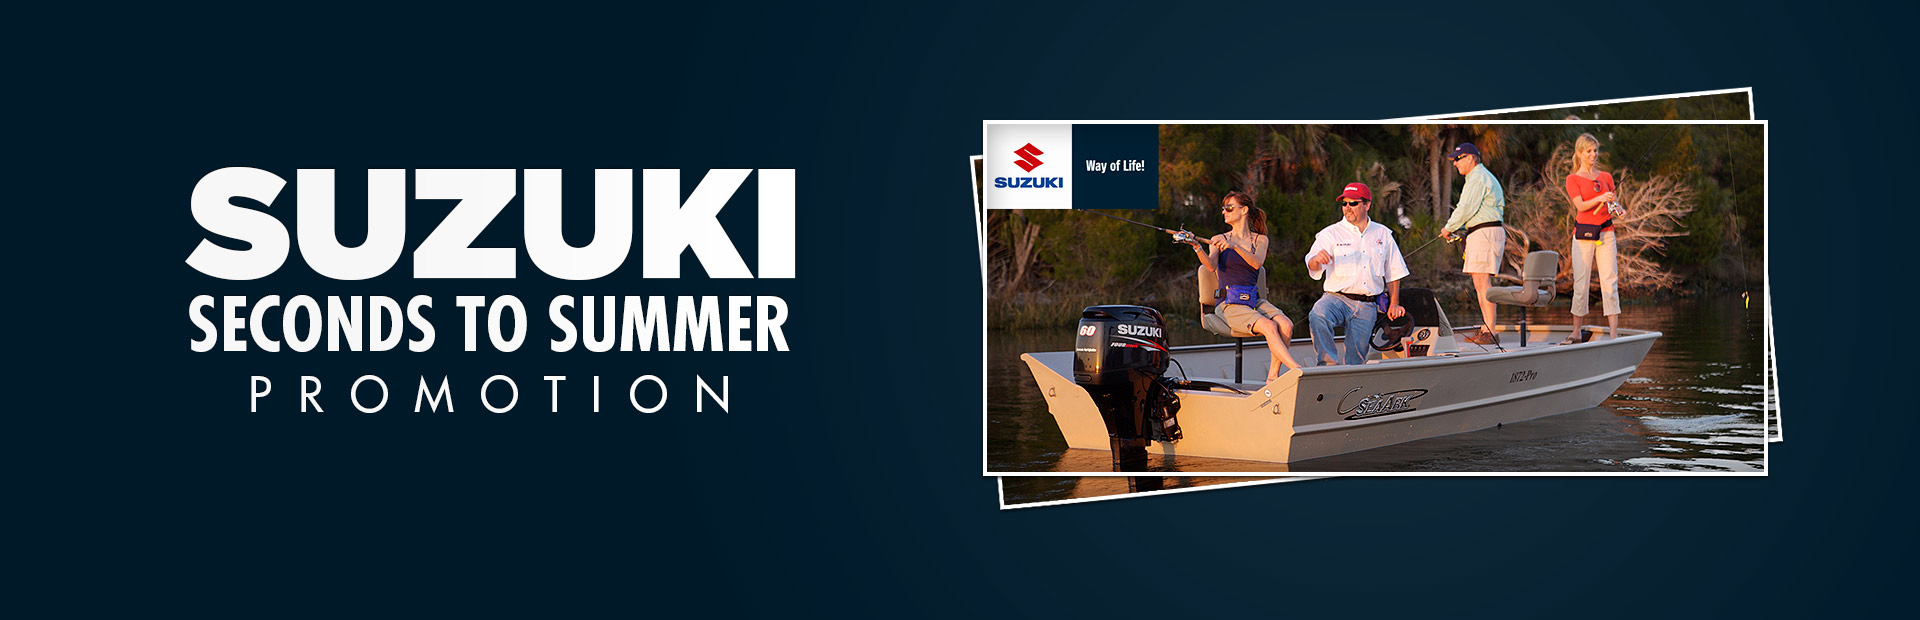 Suzuki: Seconds to Summer